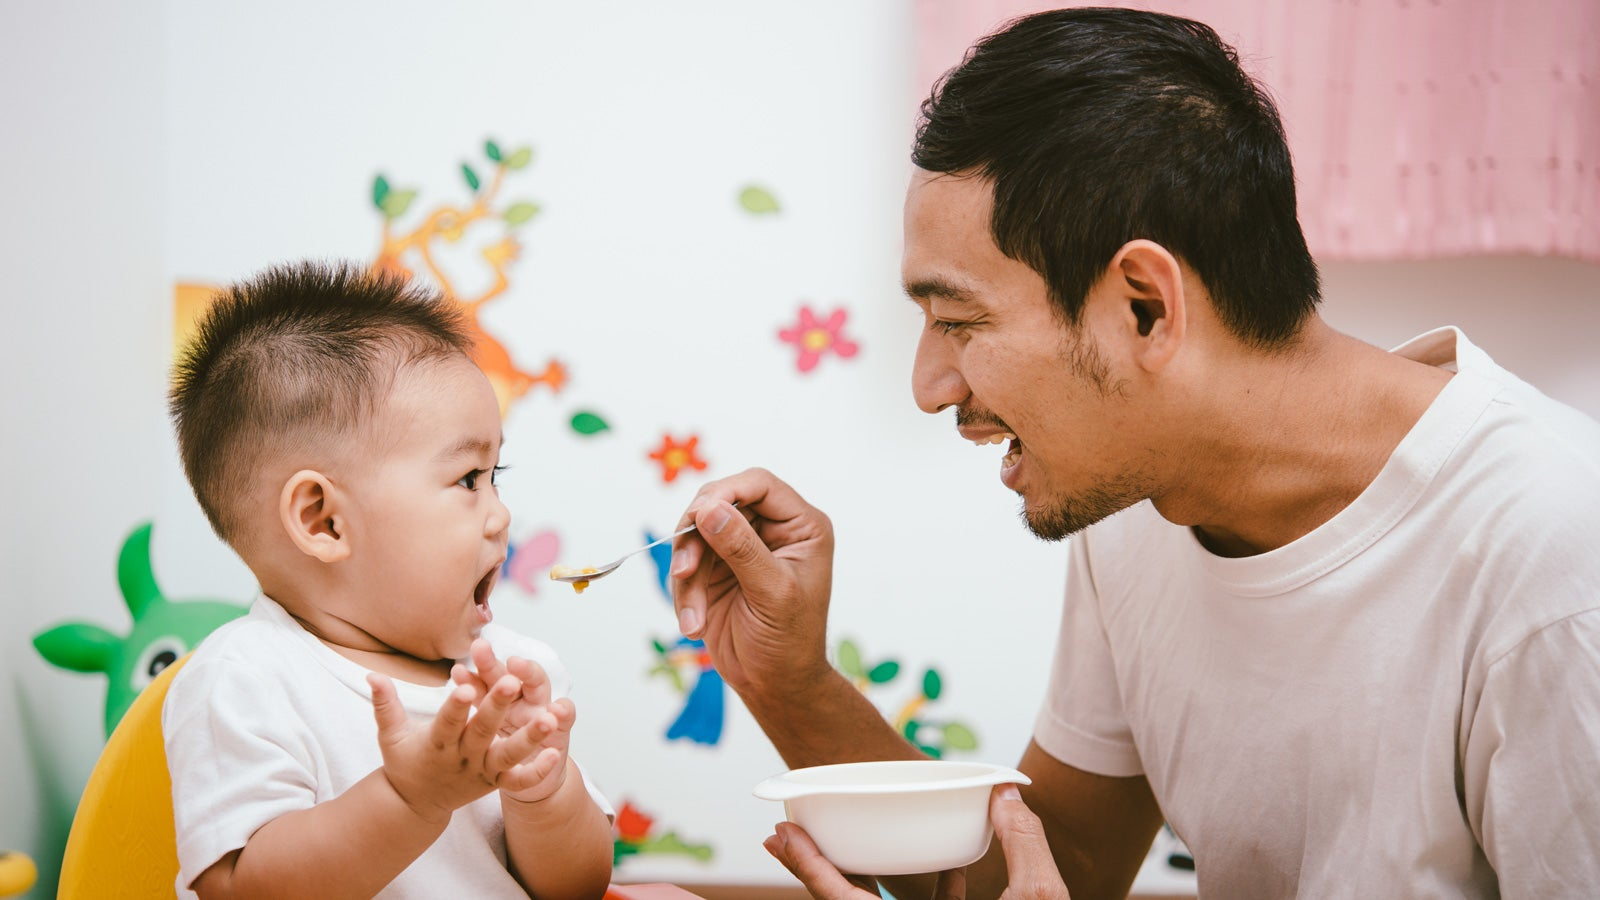 A smiling father feeding his toddler